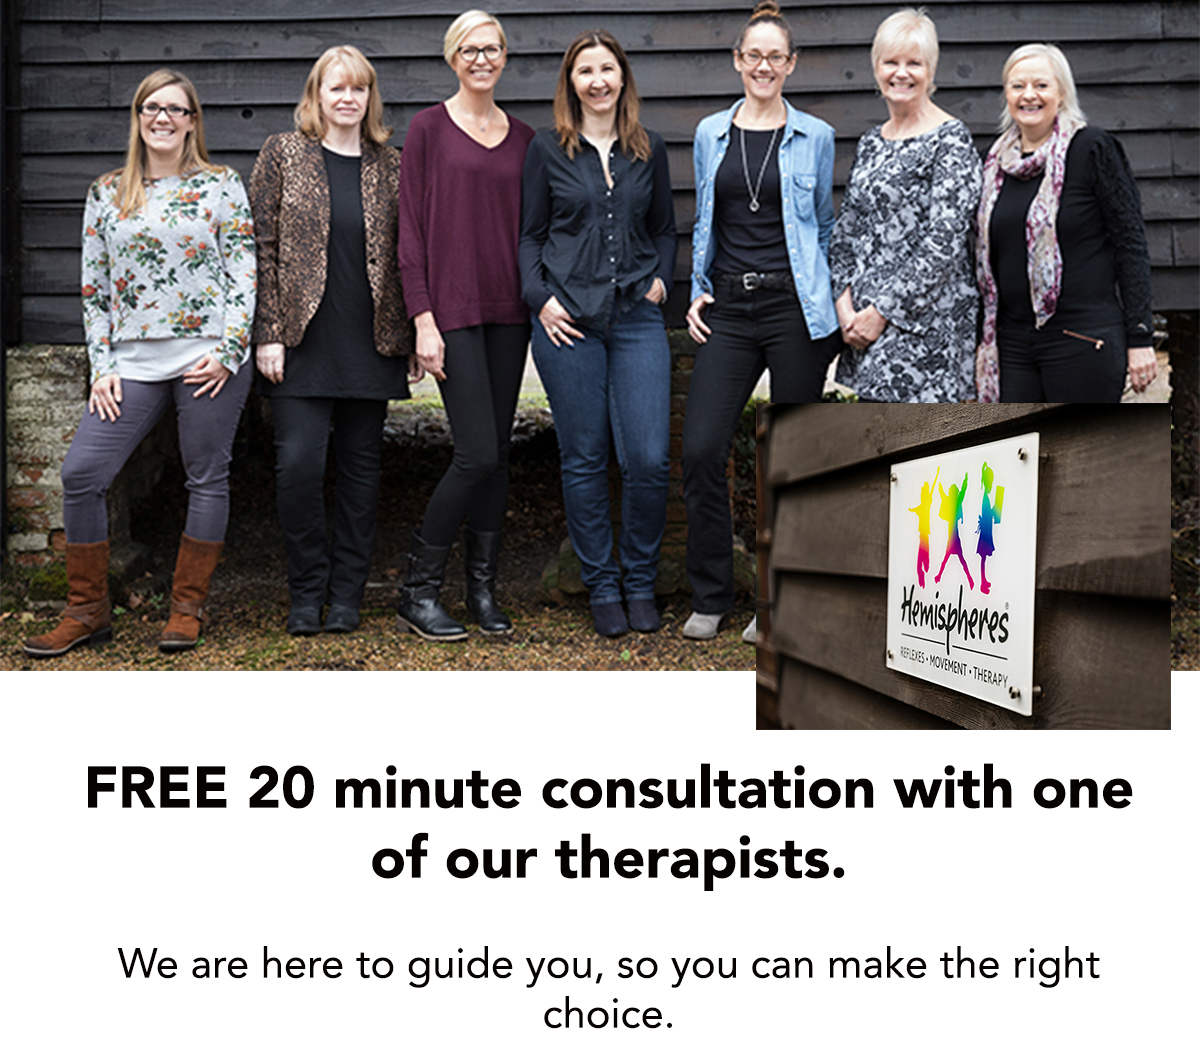 Free 20 minute consultation with one of our therapist